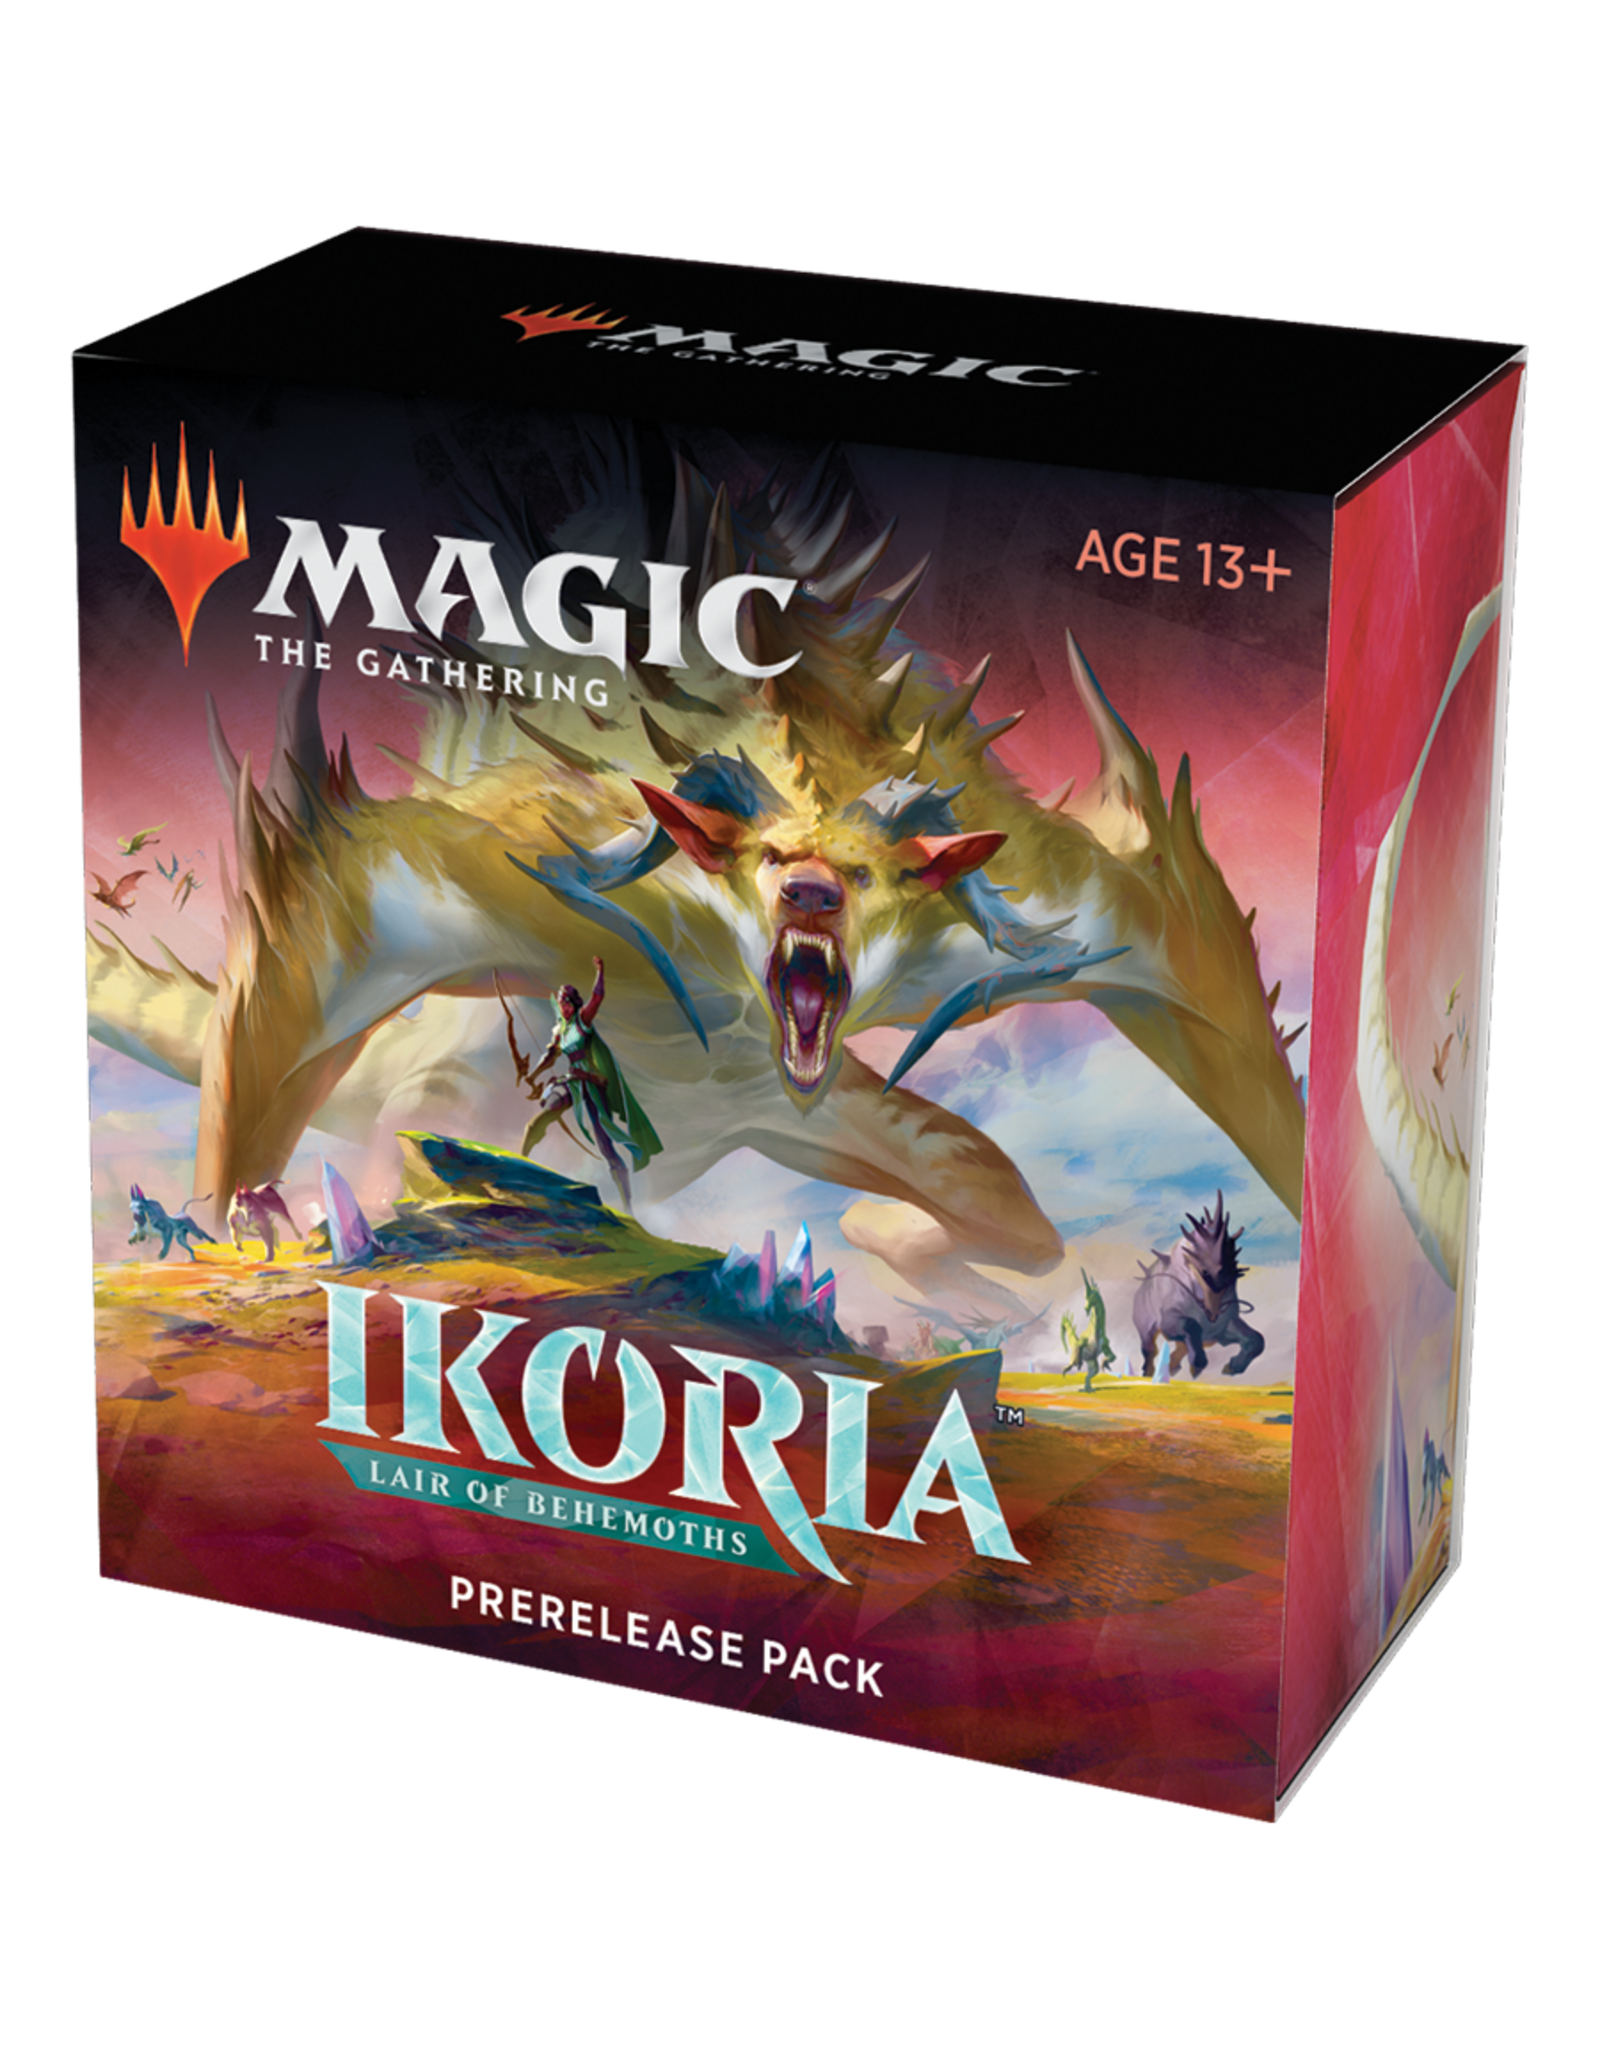 Magic: The Gathering Magic: The Gathering - Ikoria: Lair of Behemoths - Prerelease Pack (+ 2 free bonus booster packs)